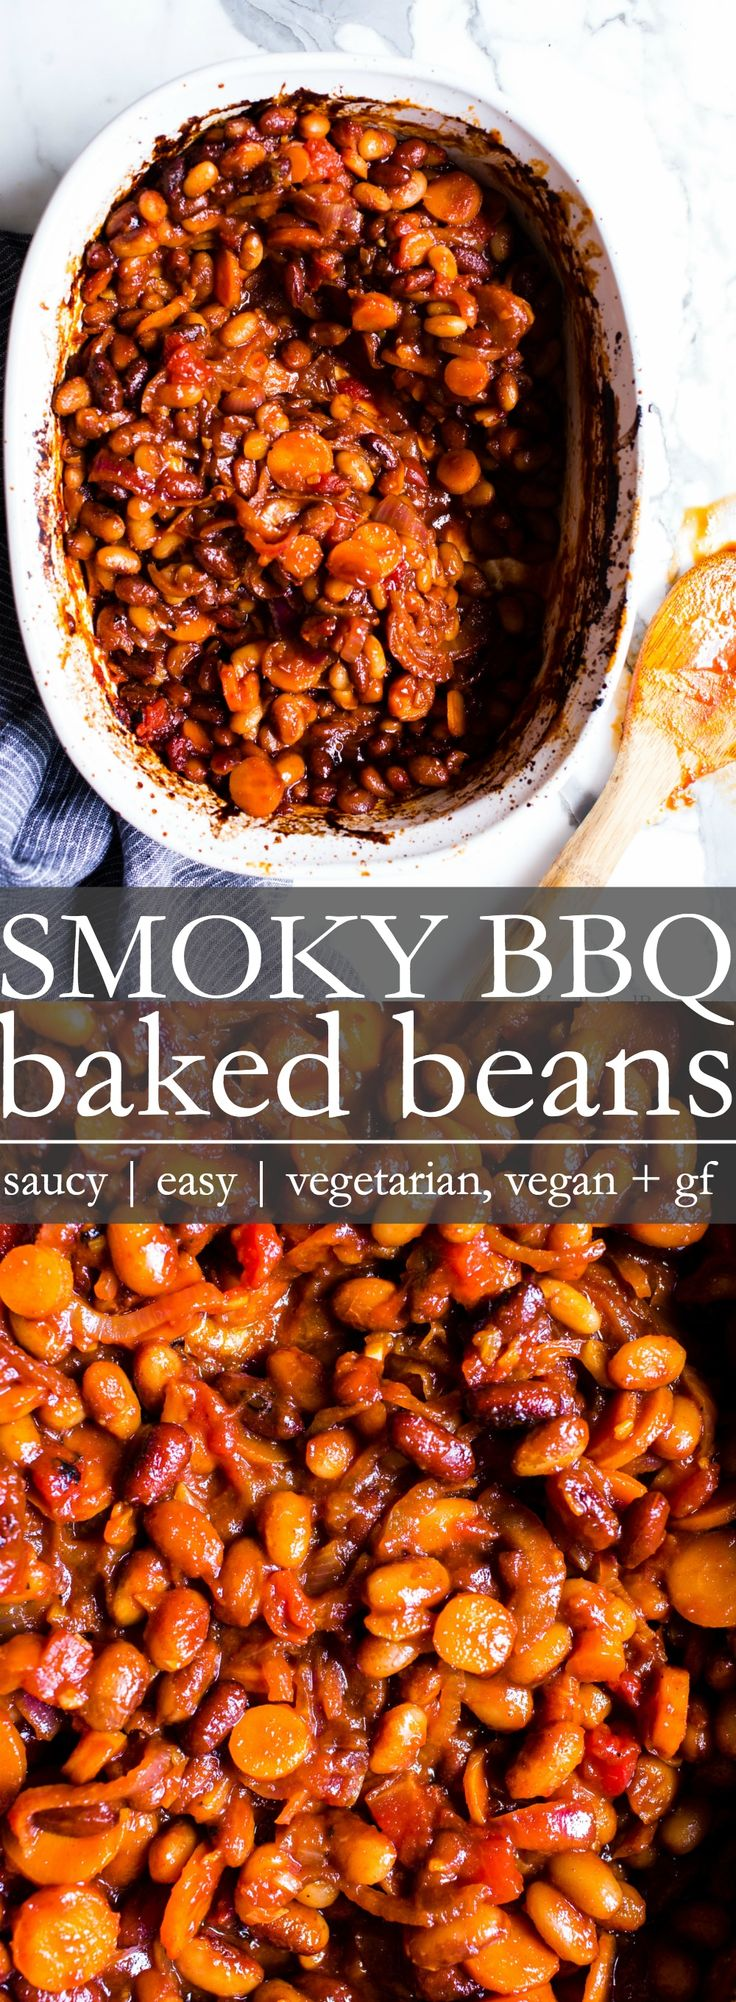 Smoky BBQ Baked Beans are slow cooked, sweet and spicy! Make this vegetarian bak…